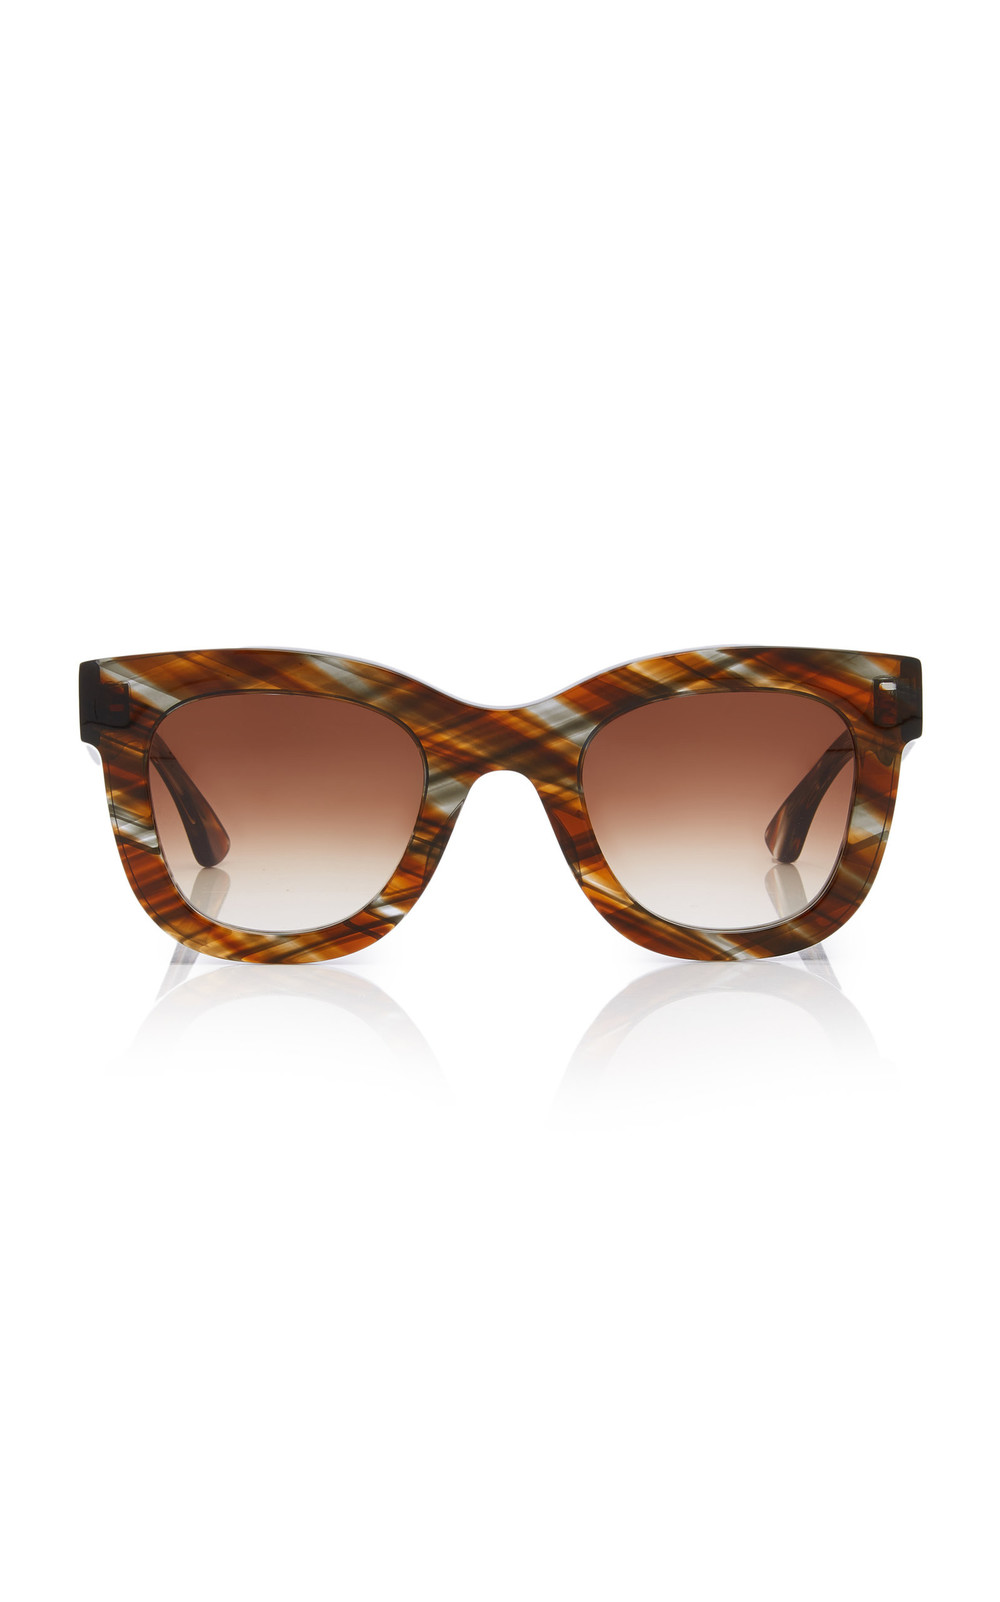 Thierry Lasry Gambly 708 Cat-Eye Acetate Sunglasses in print